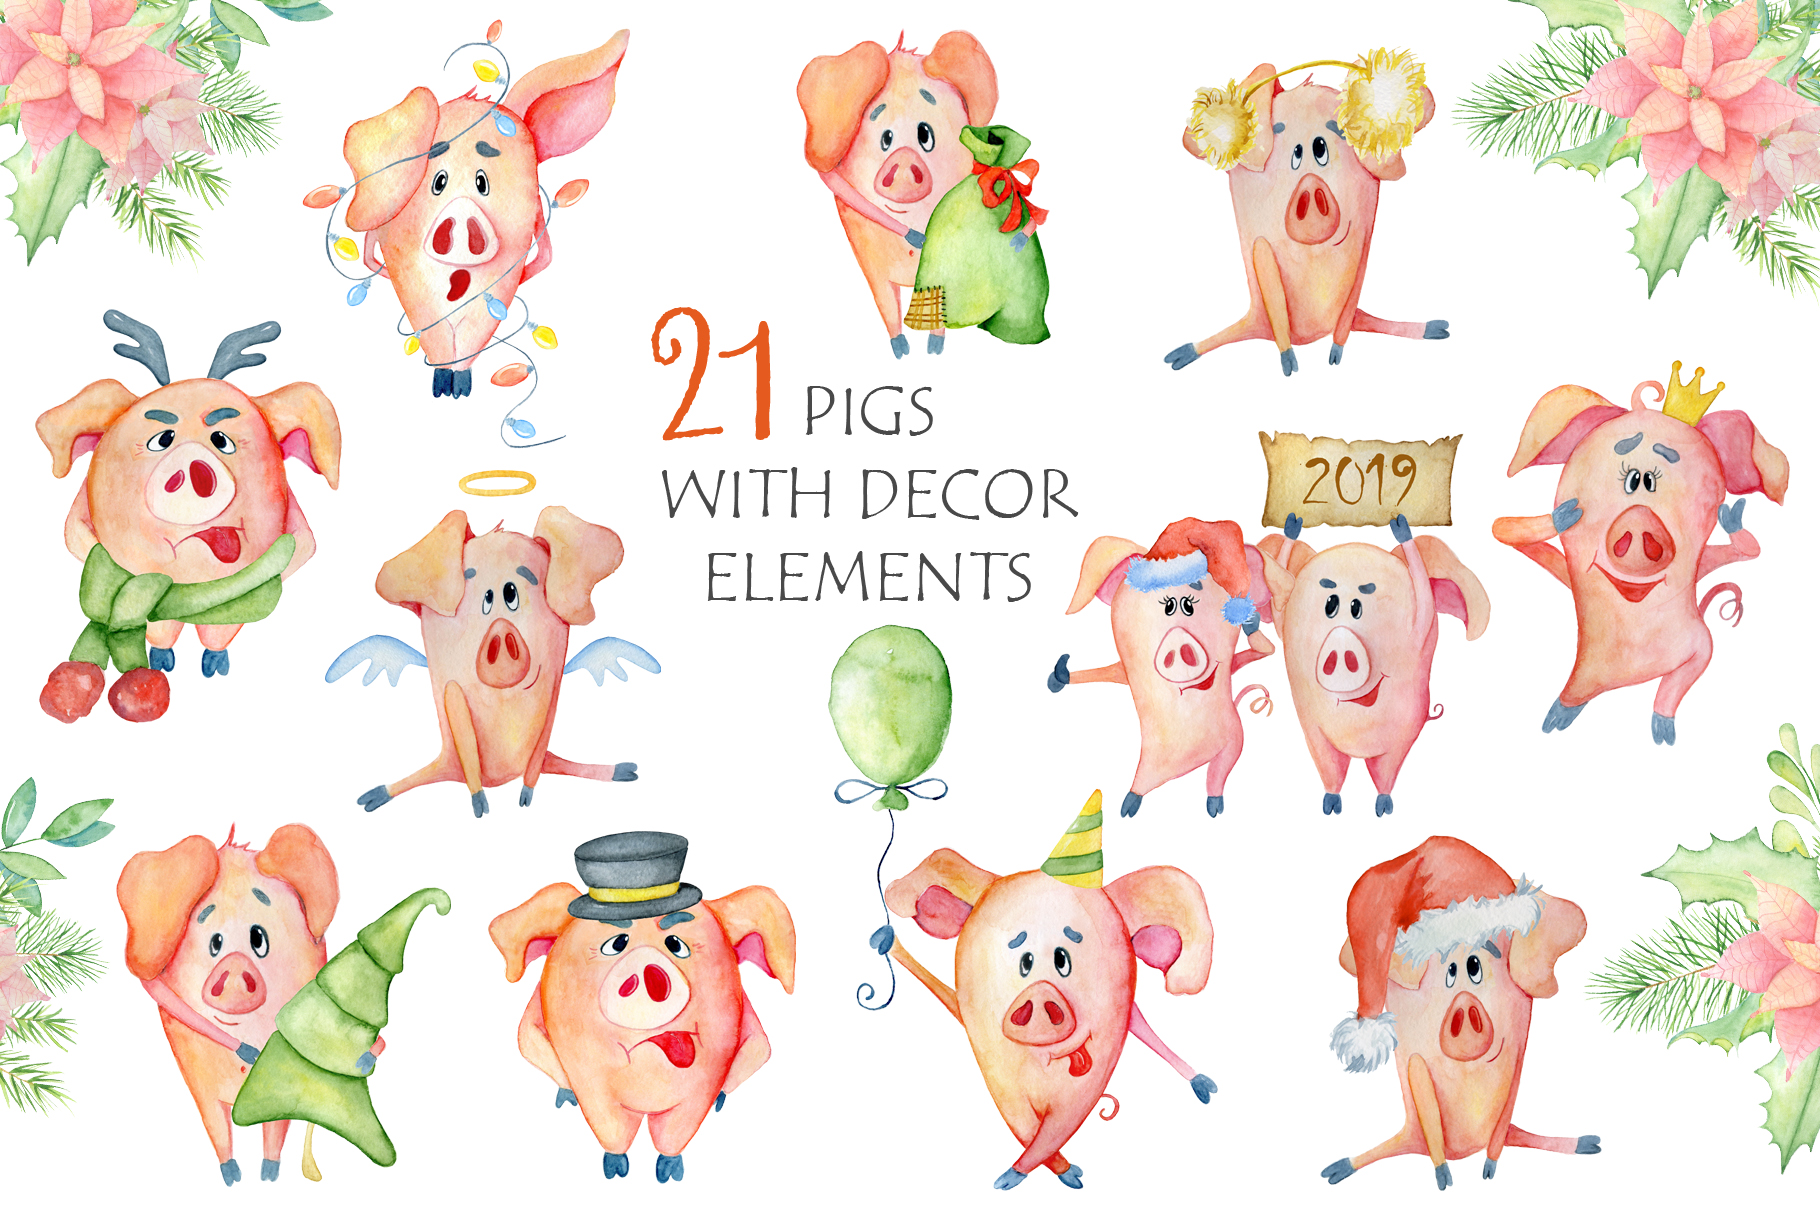 Cute Christmas pigs with decor elements for New Year 2019 example image 6